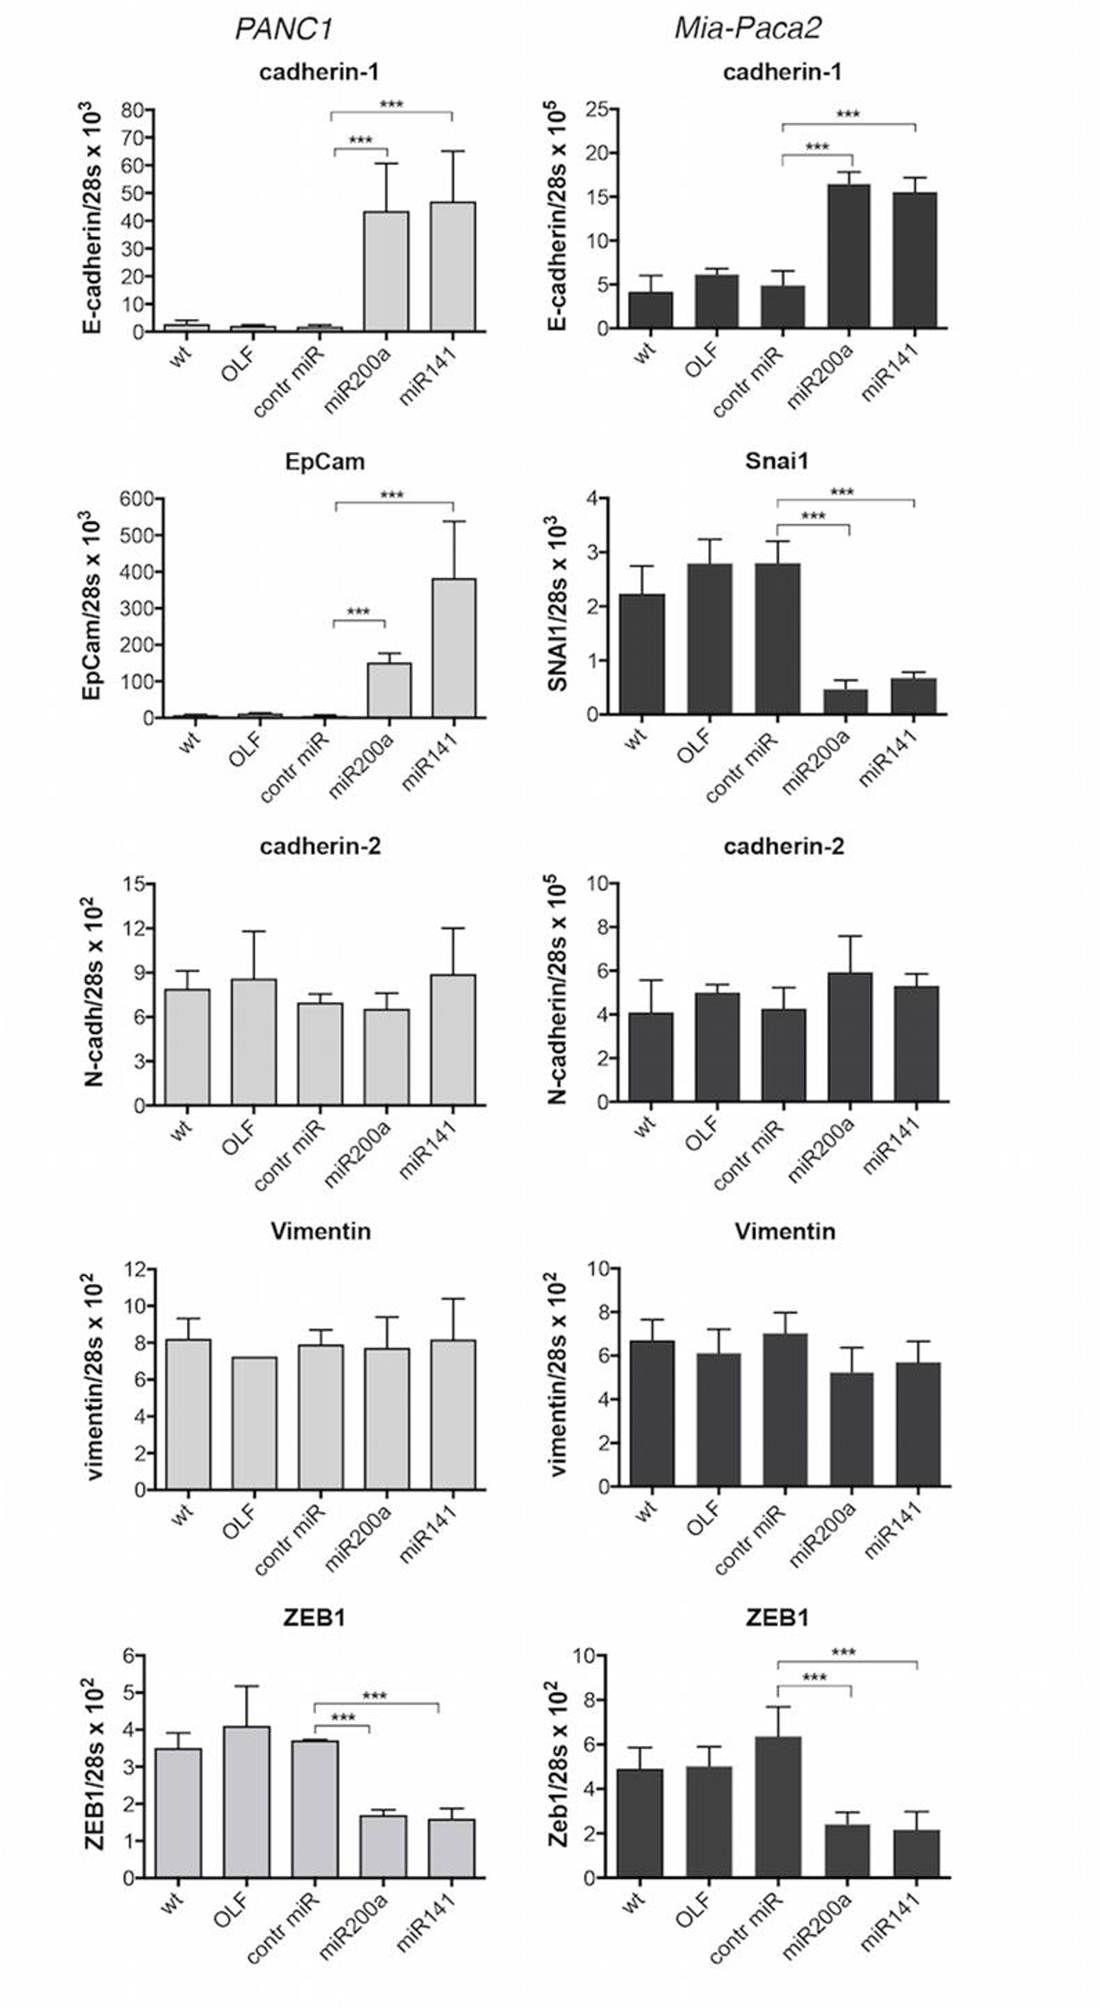 Effect of miR-200 over-expression on the expression of EMT and epithelial markers in PANC1 and Mia-Paca2 cells.